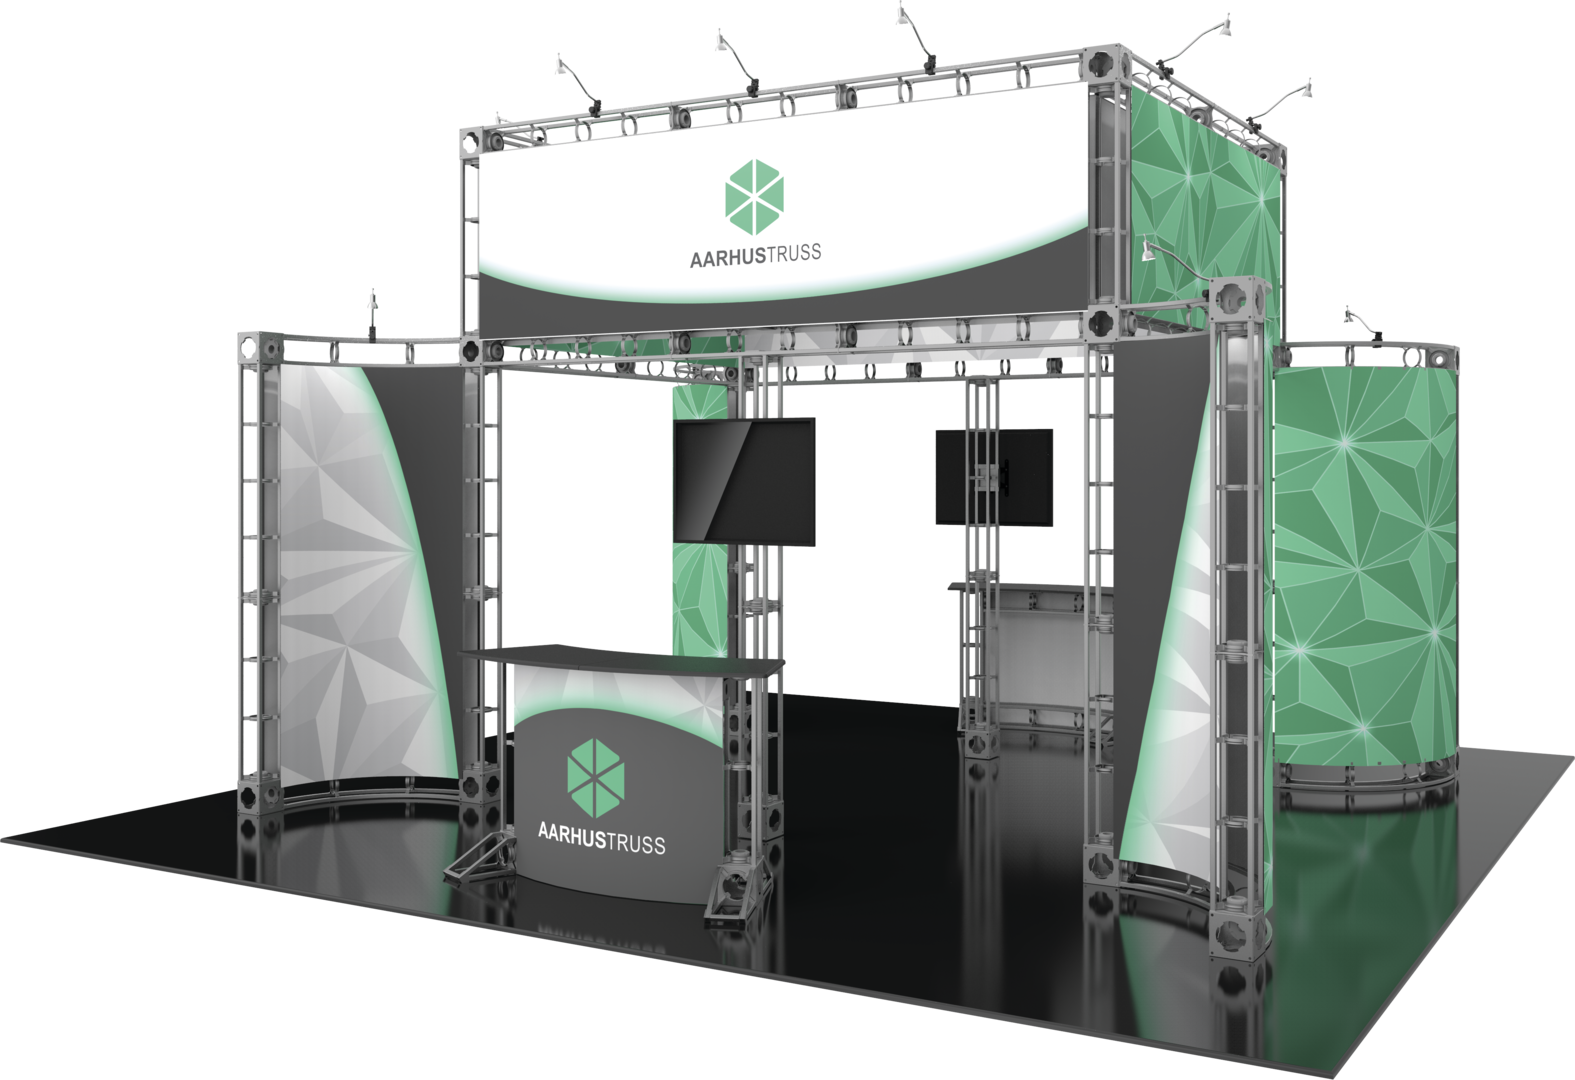 Exhibit logistics aarhus orbital express truss 20 20 for Express modular pricing